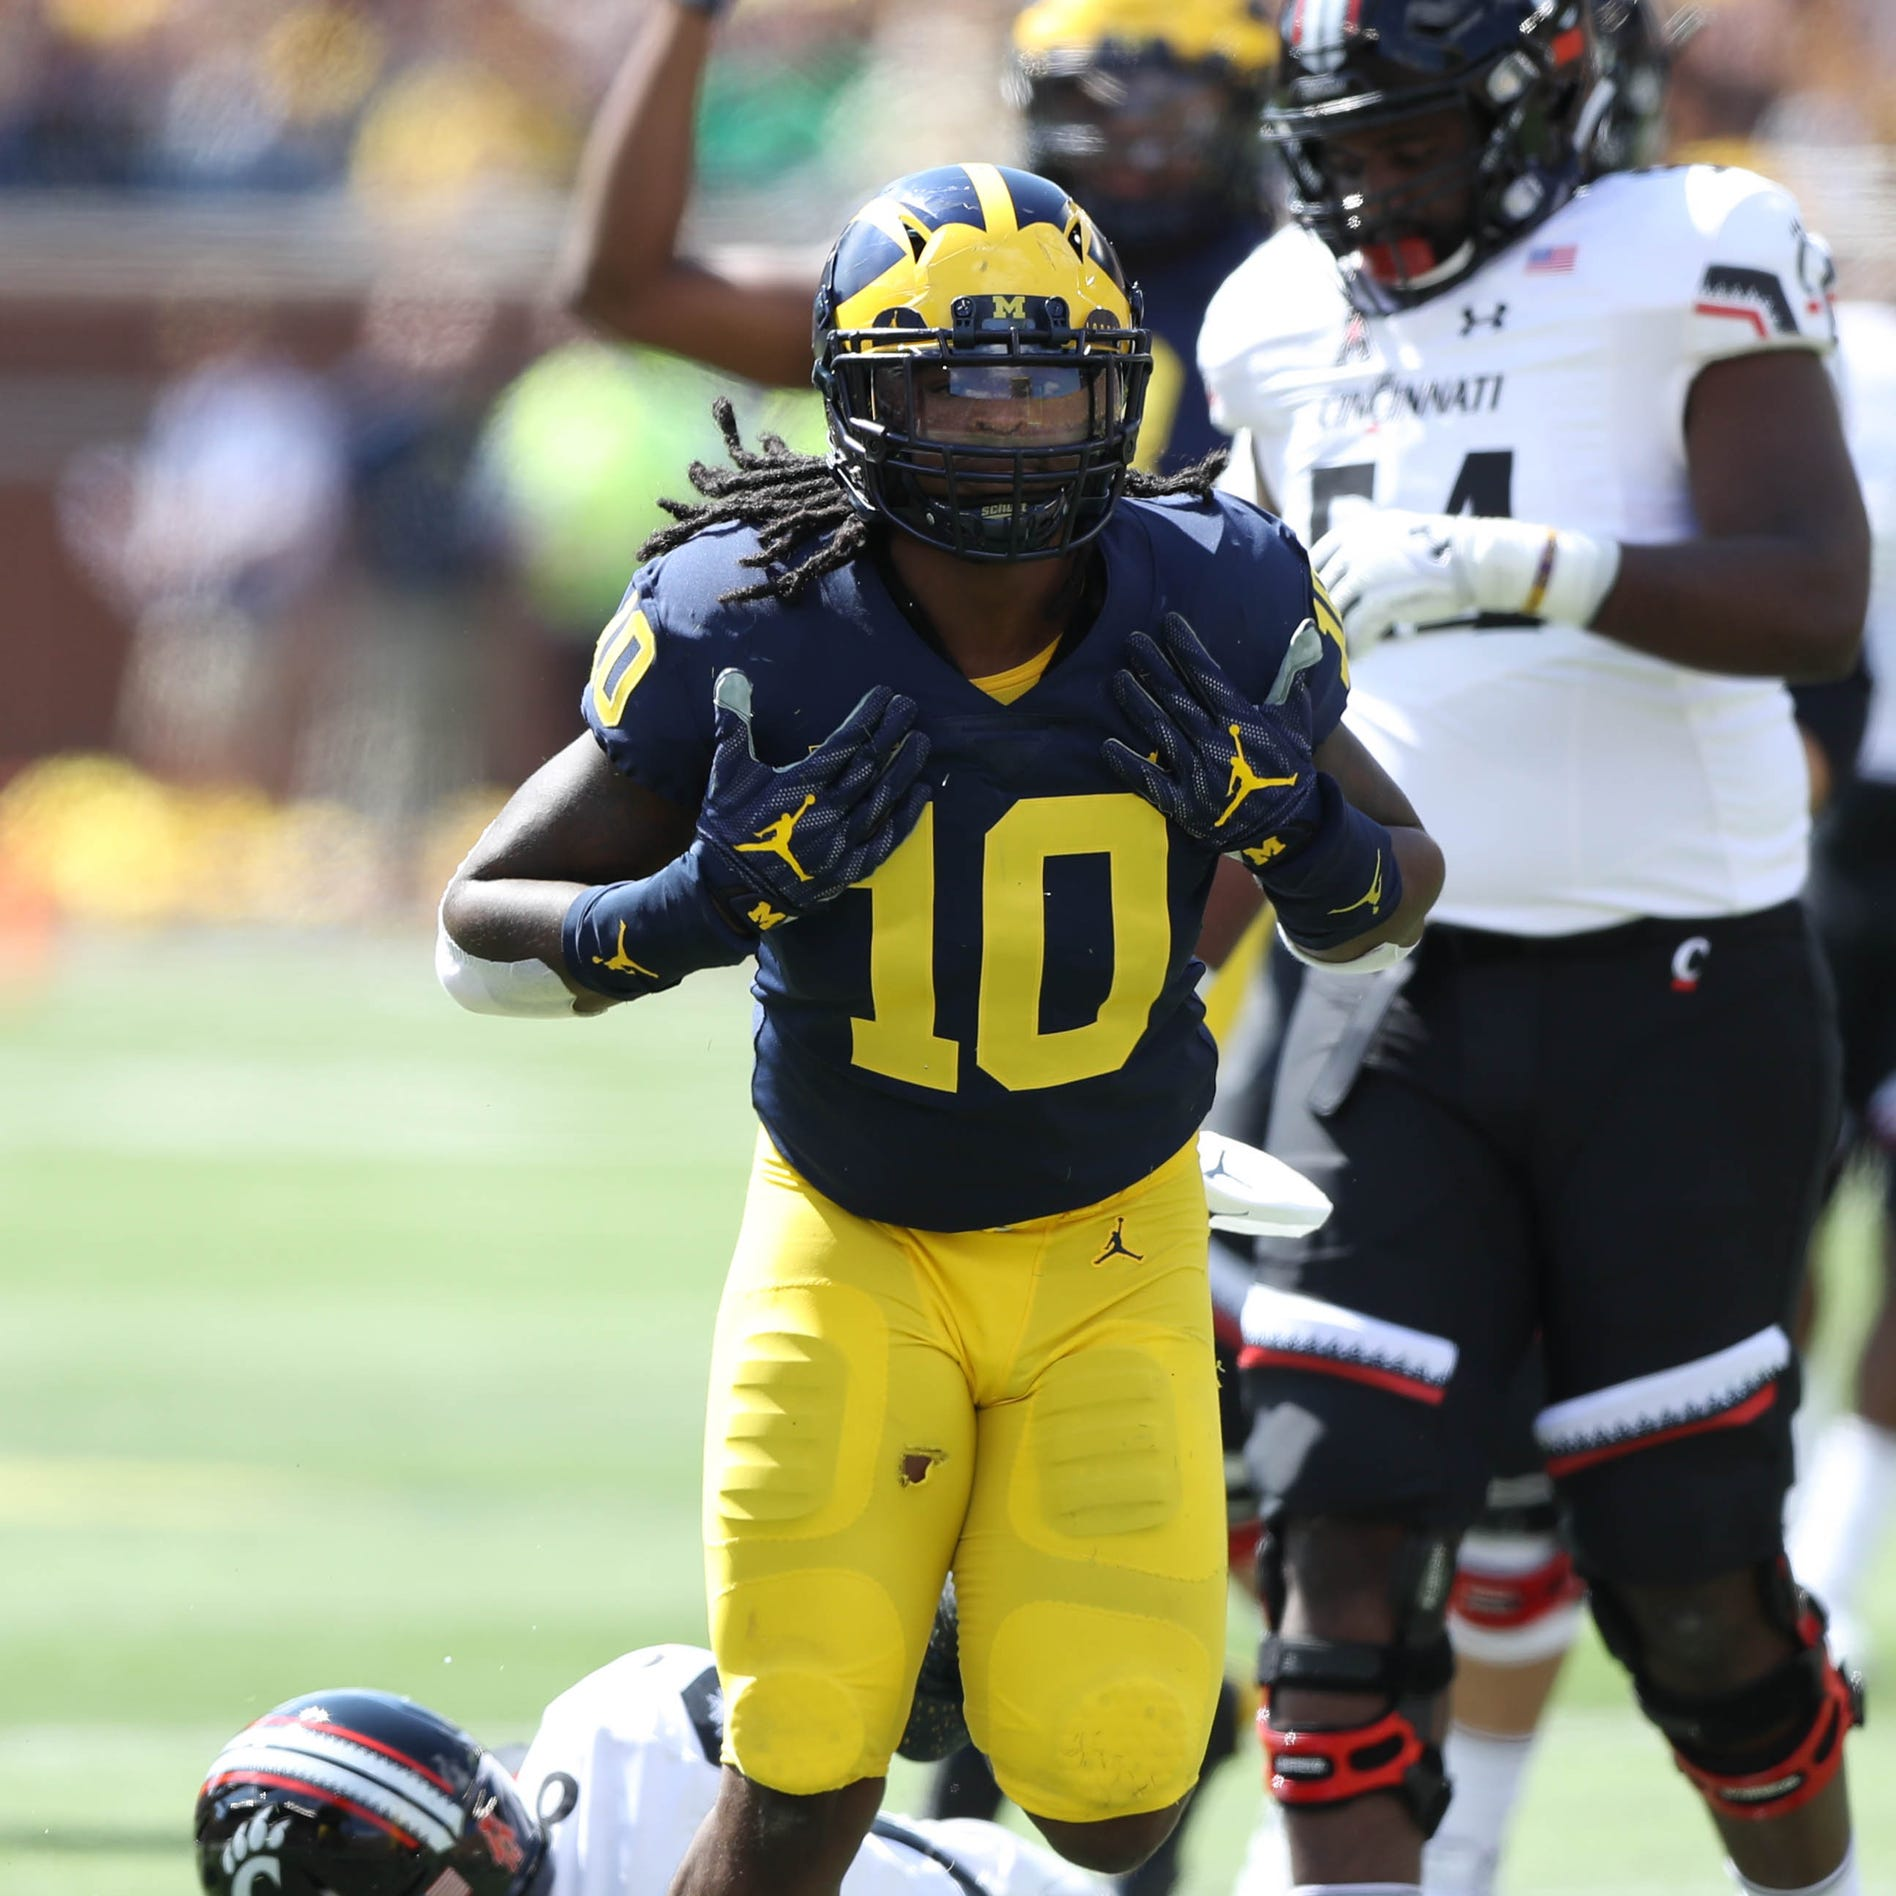 Michigan's Devin Bush Jr. drafted by Pittsburgh Steelers 10th overall